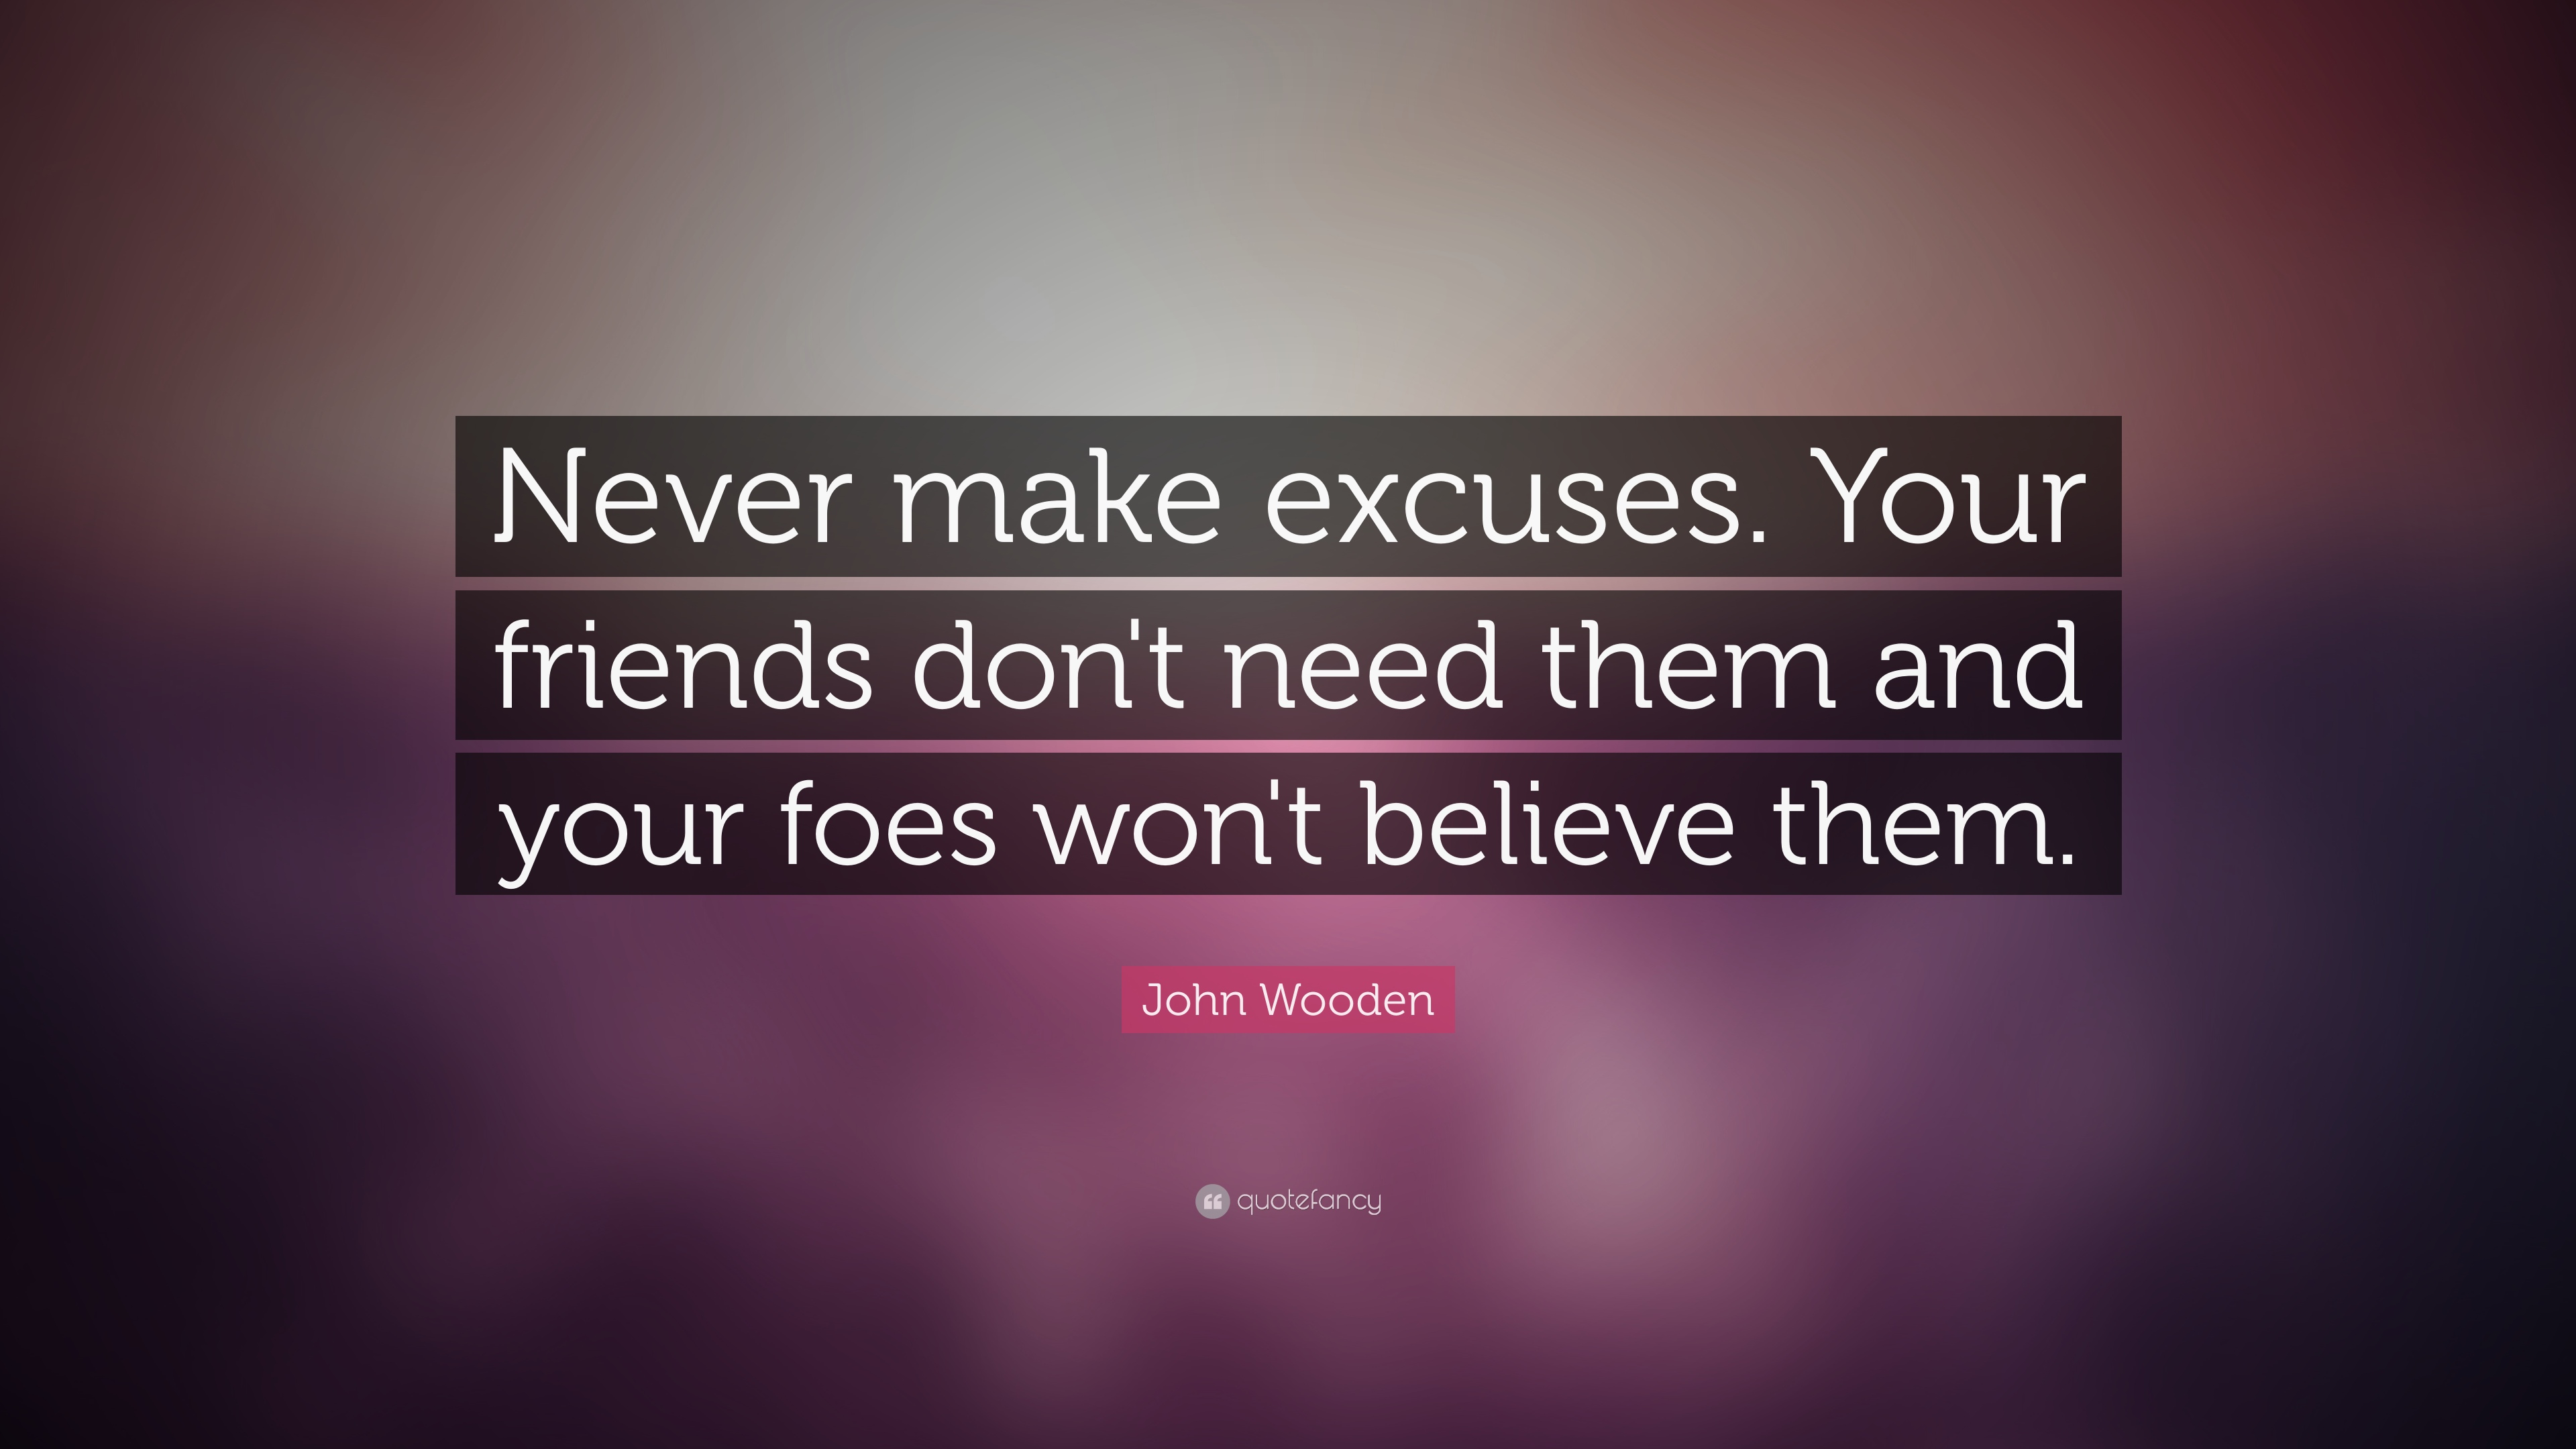 John Wooden Quote Never Make Excuses Your Friends Dont Need Them